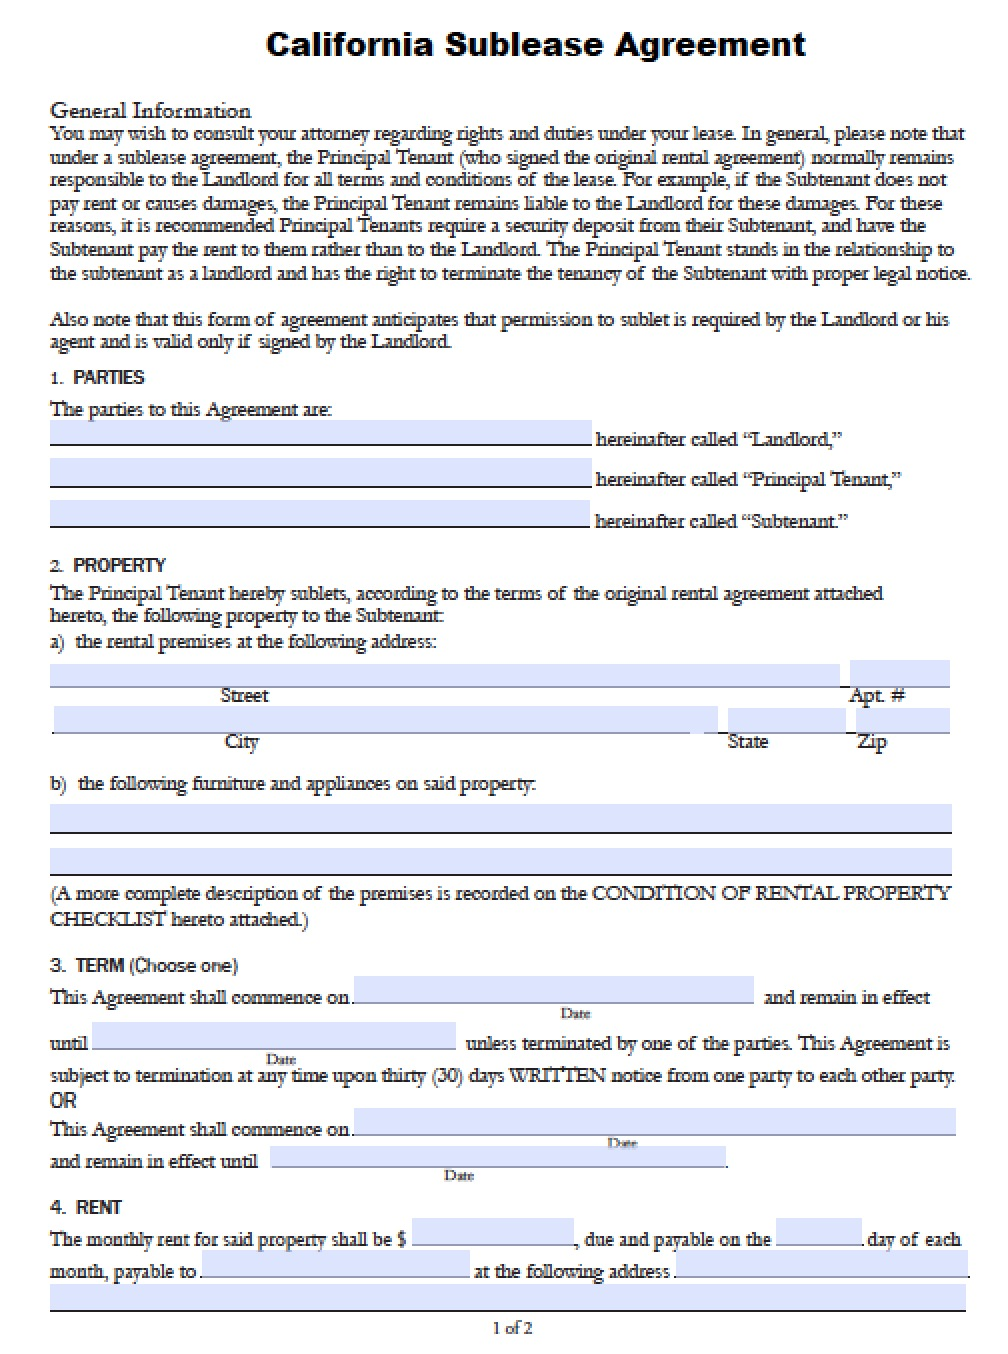 California Sublease Agreement Version #2 | Adobe PDF | Microsoft Word  Lease Templates